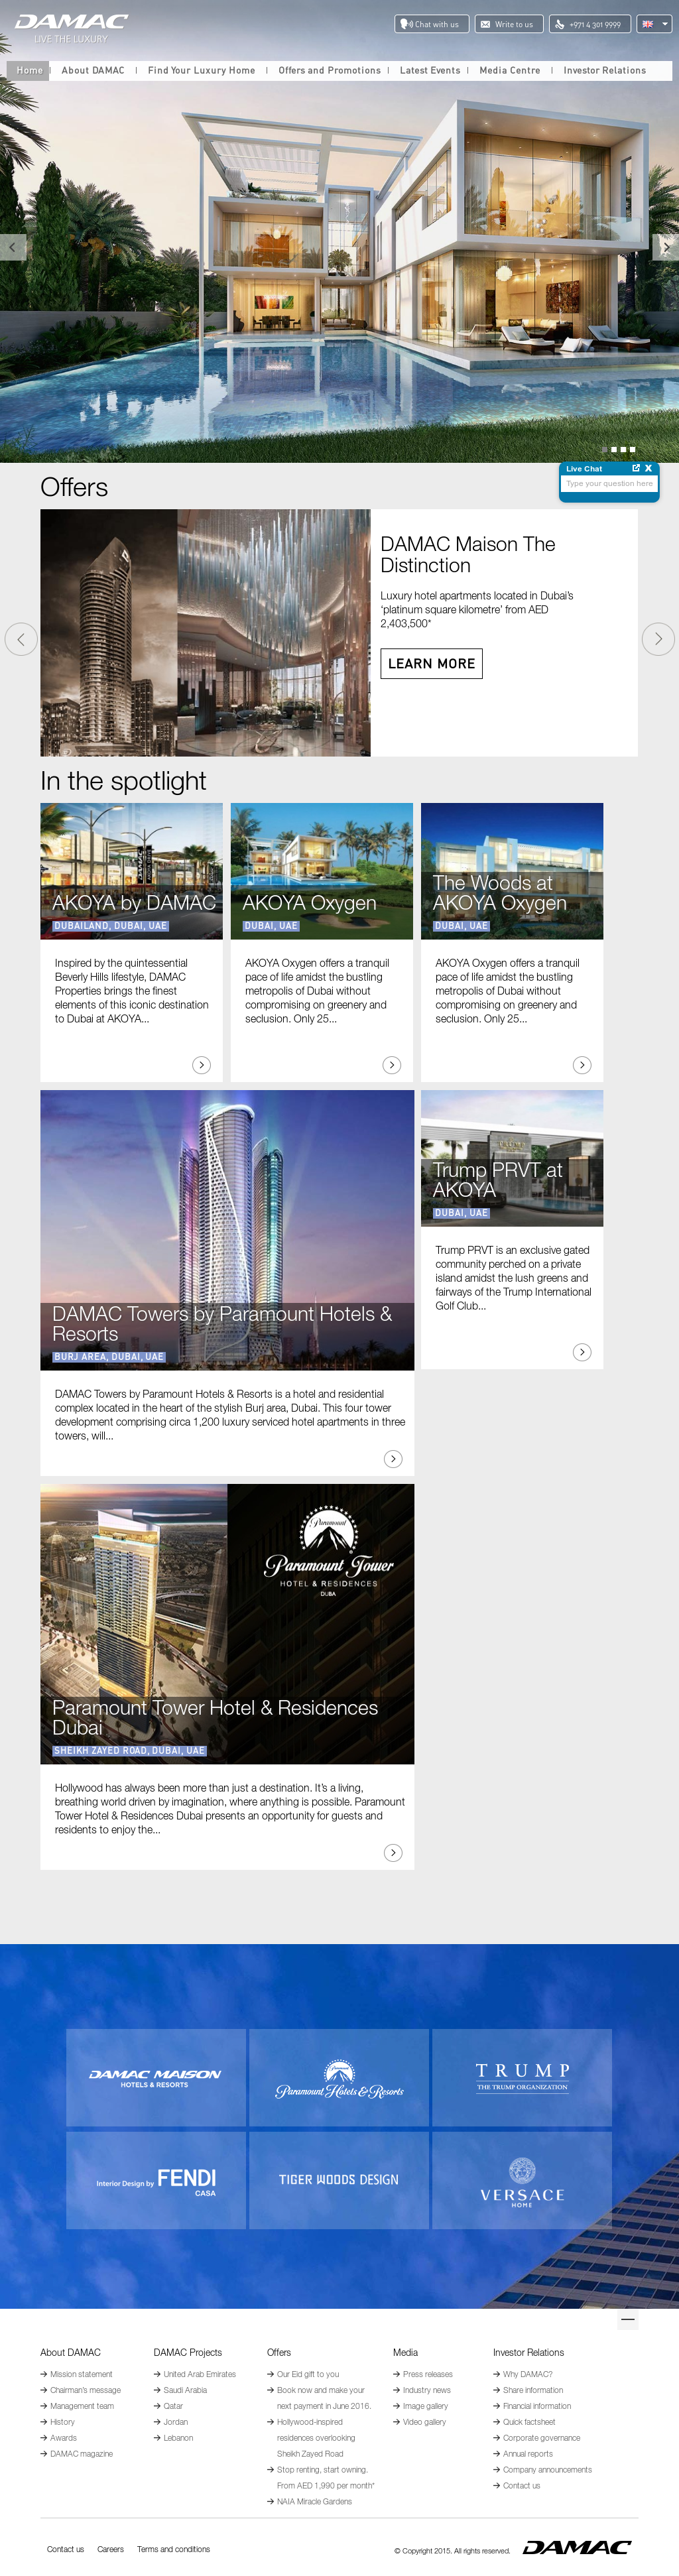 DAMAC Competitors, Revenue and Employees - Owler Company Profile